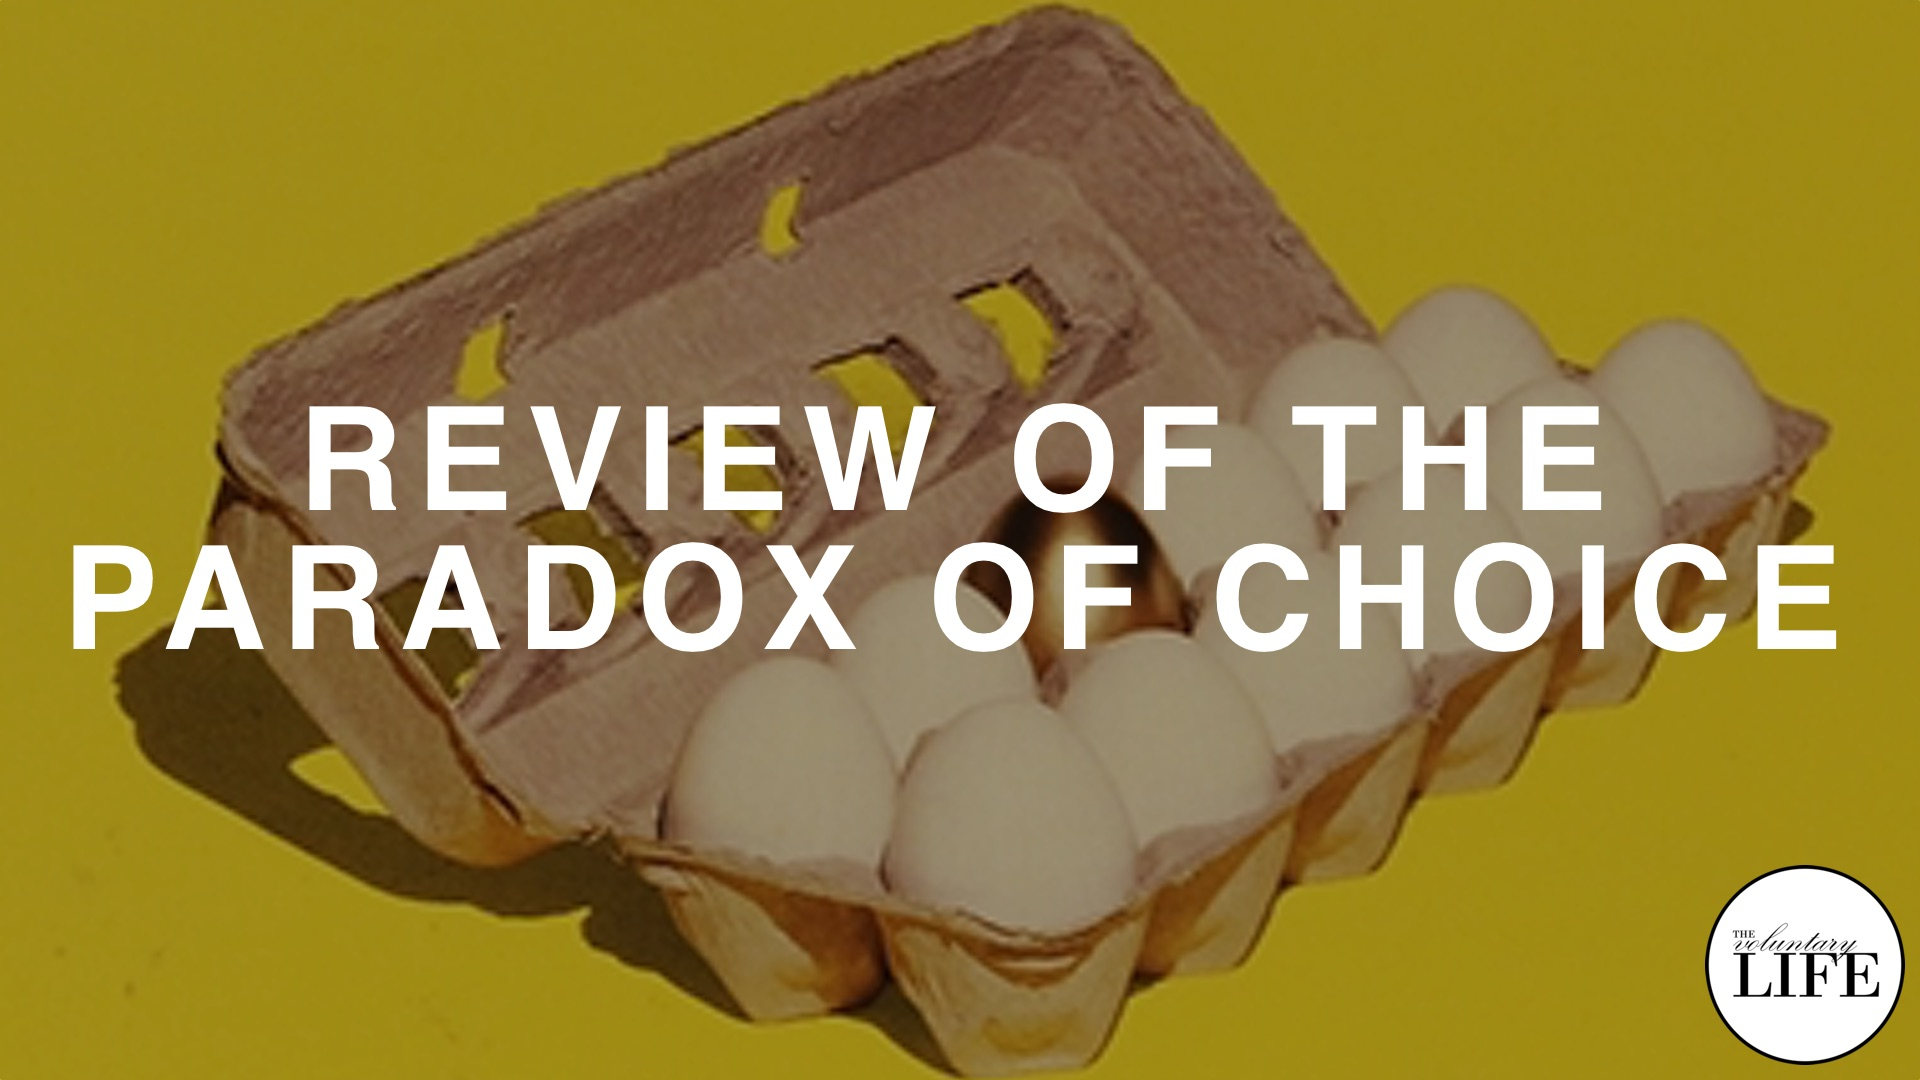 342 Review of The Paradox of Choice